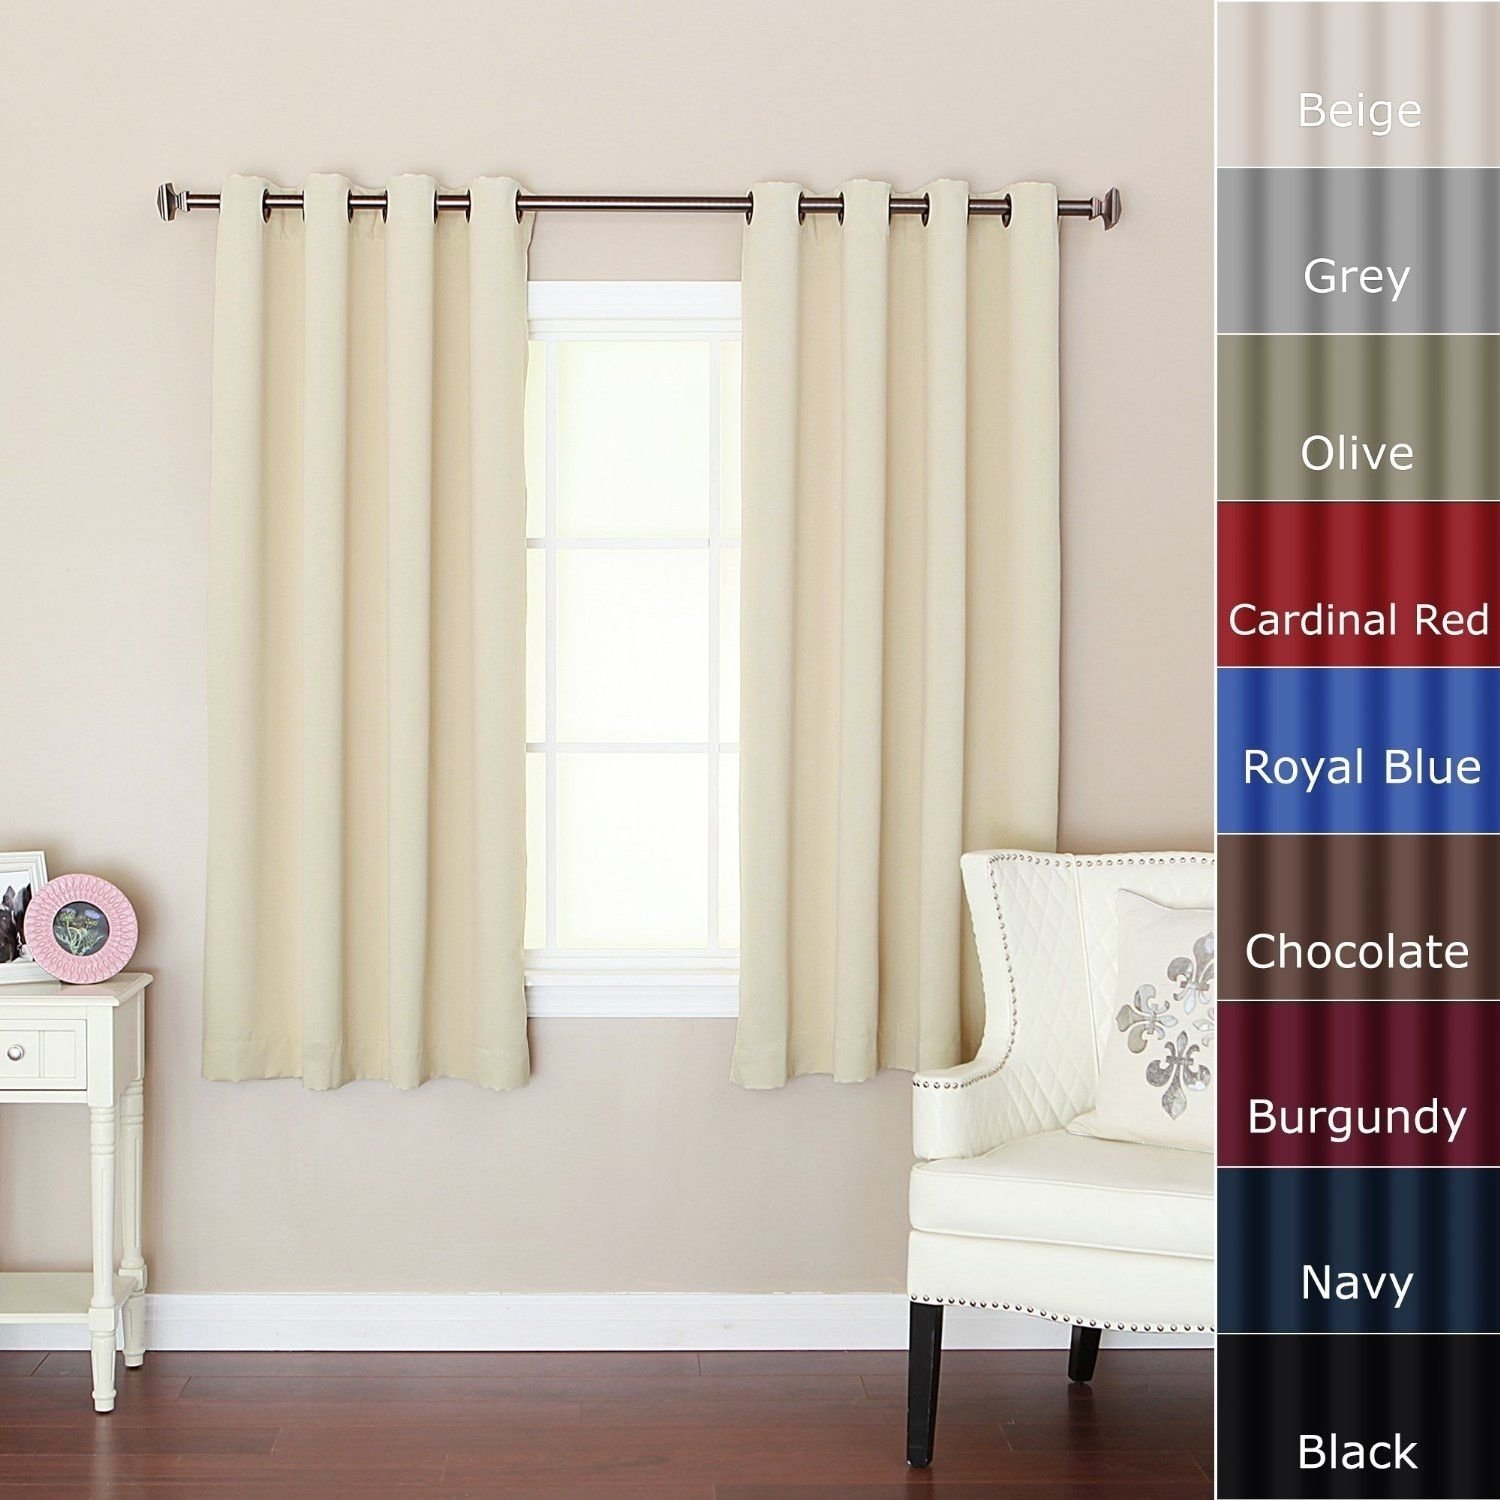 10 Perfect Window Treatment Ideas For Small Windows bedroom curtains for short windows http realtag pinterest 2020